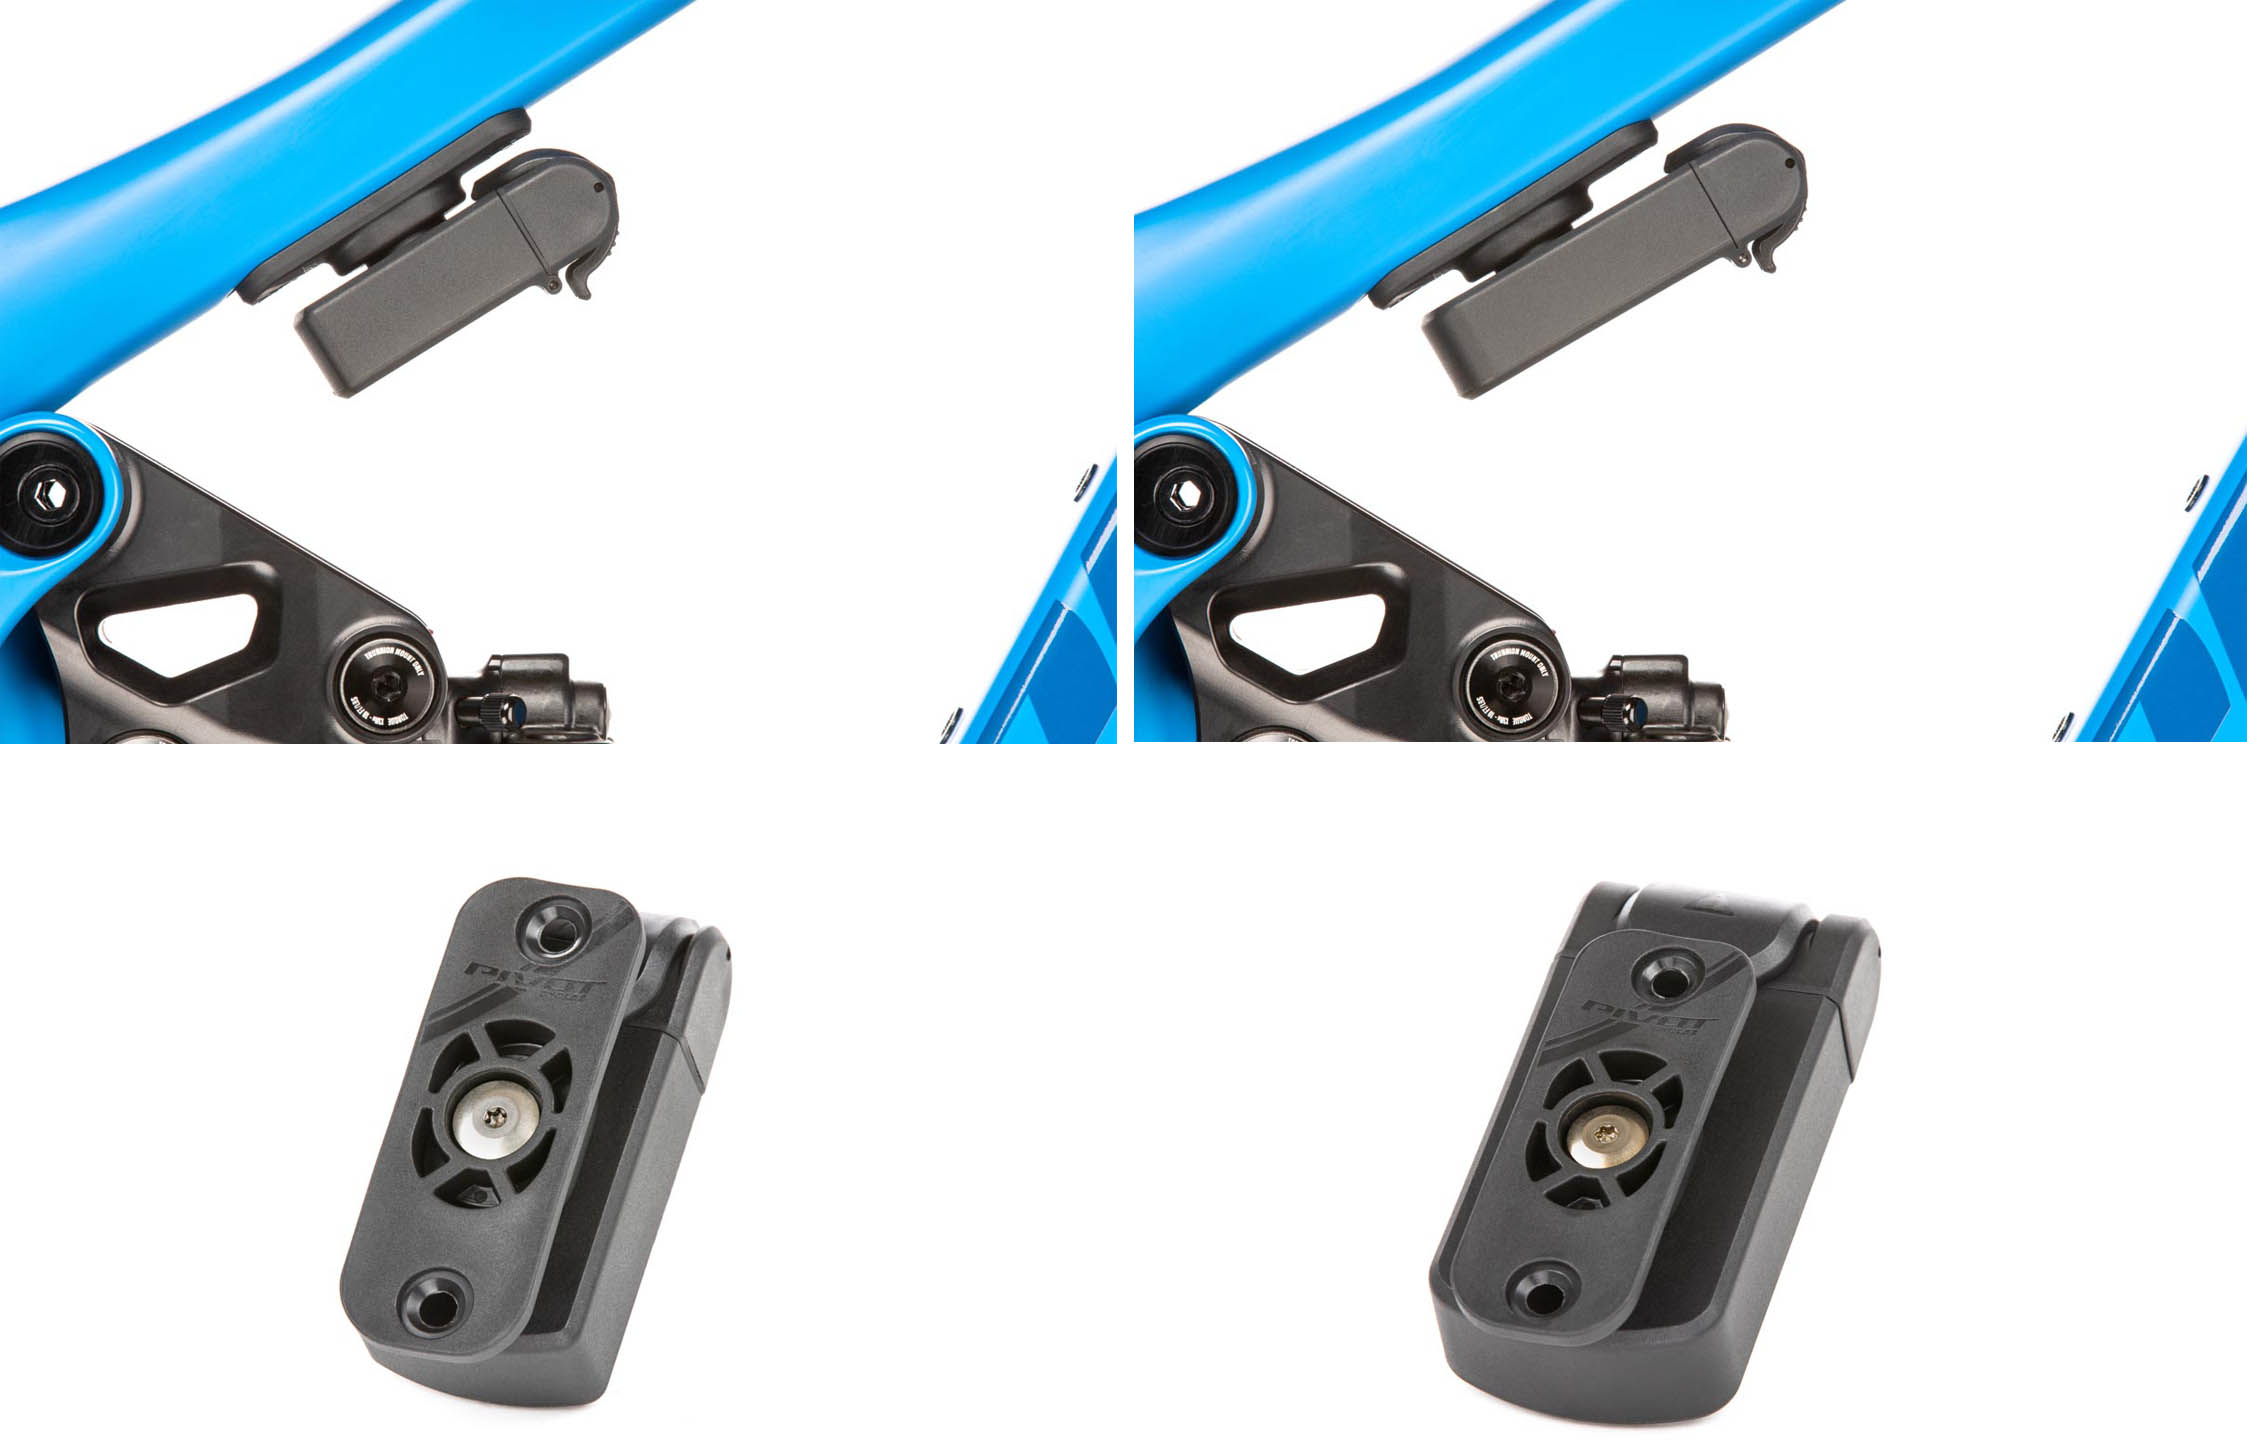 Fix it fast with the new Phoenix Dock Tool System from Pivot x Topeak